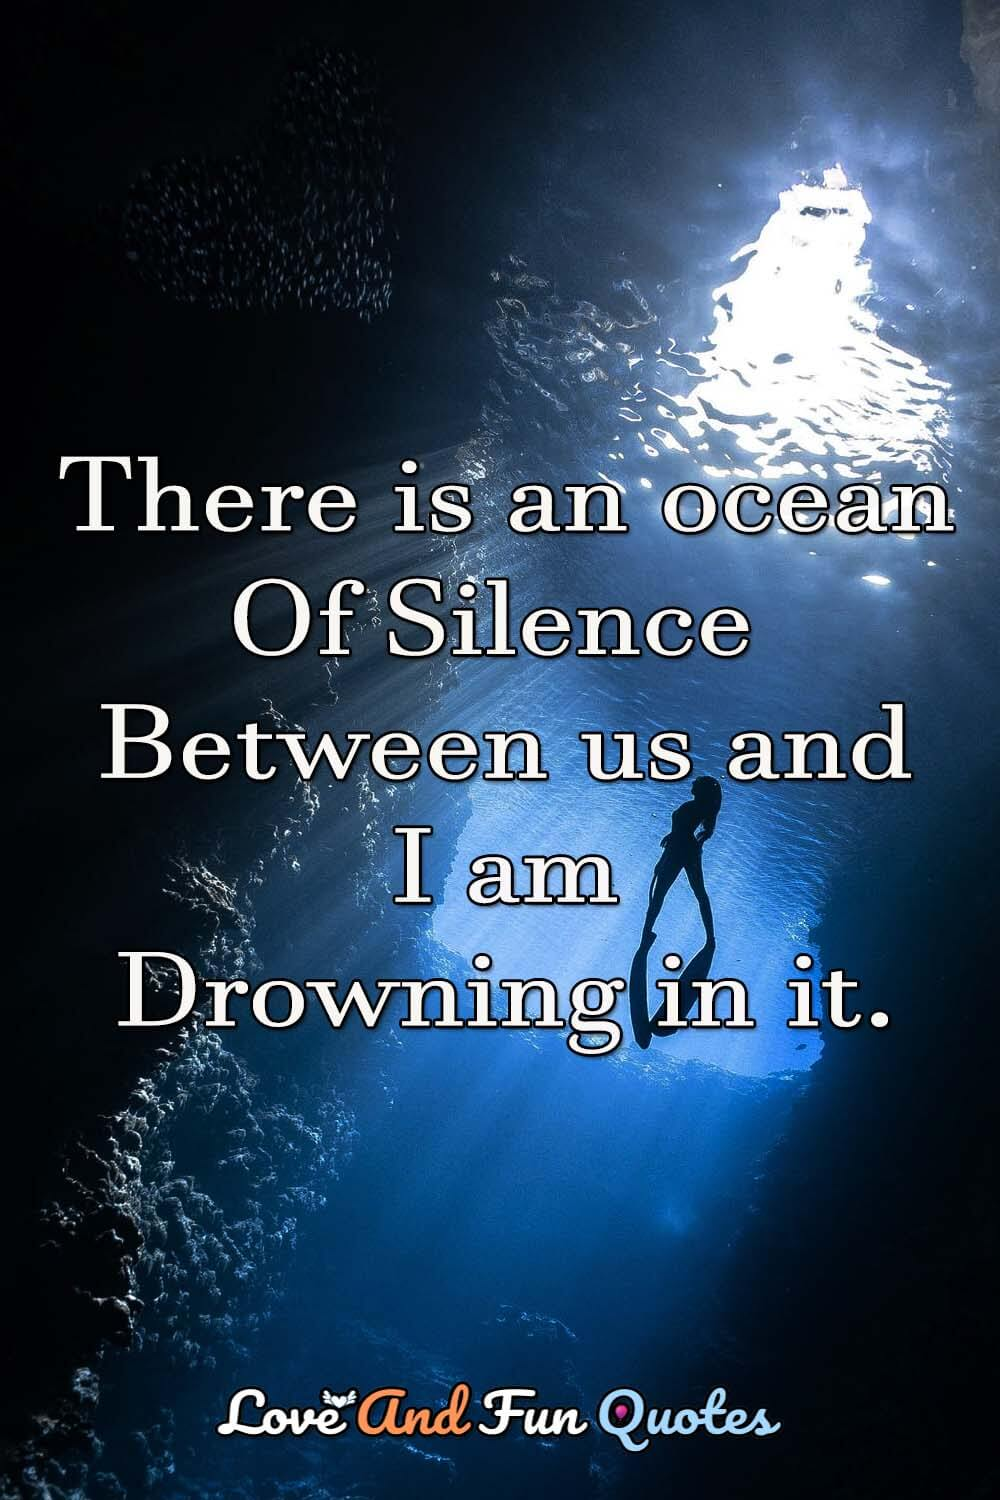 There-is-an-ocean-of-silence-between-us-and-iam-drowning-in-it